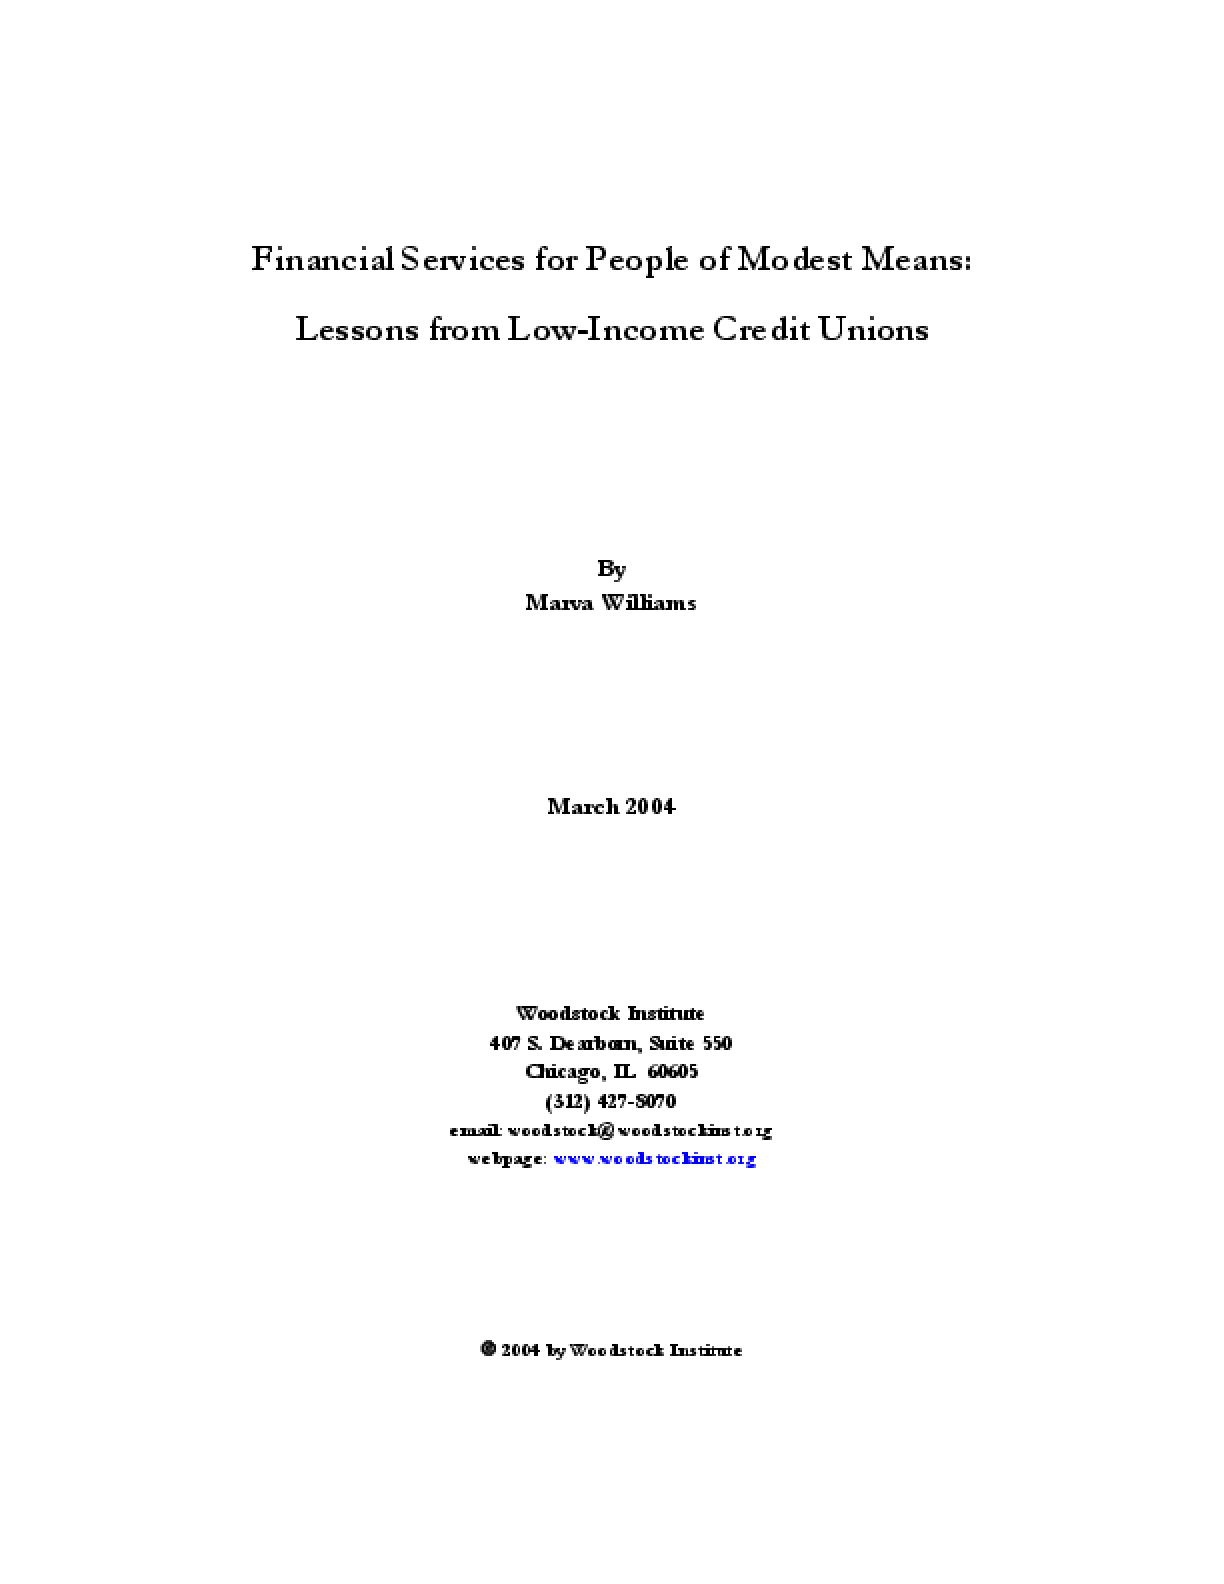 Financial Services for People of Modest Means: Lessons from Low-Income Credit Unions